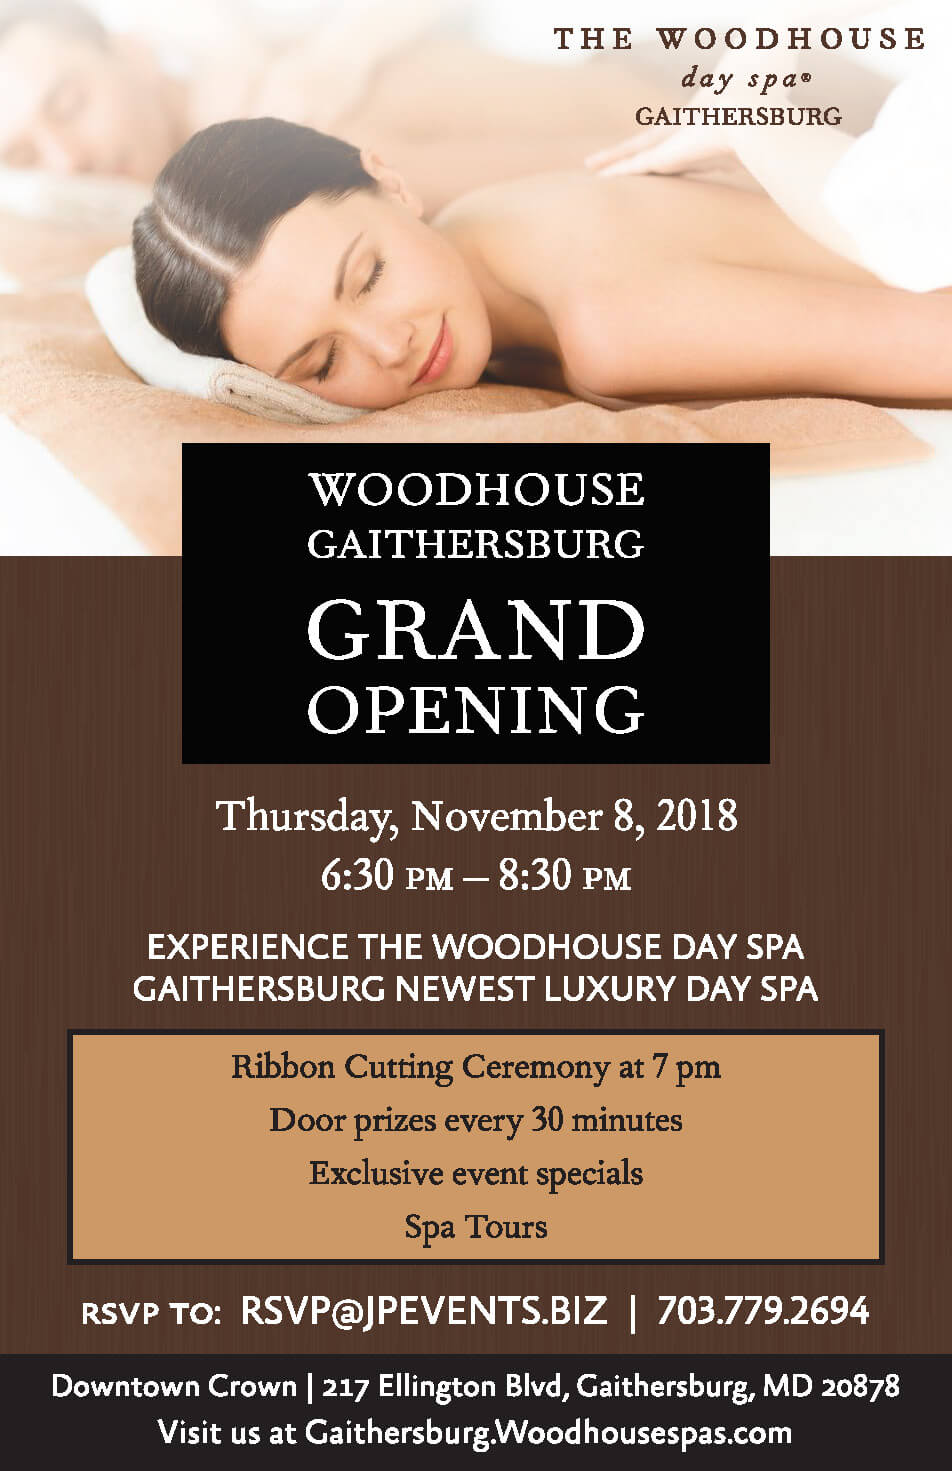 WOODHOUSE DAY SPA GRAND OPENING